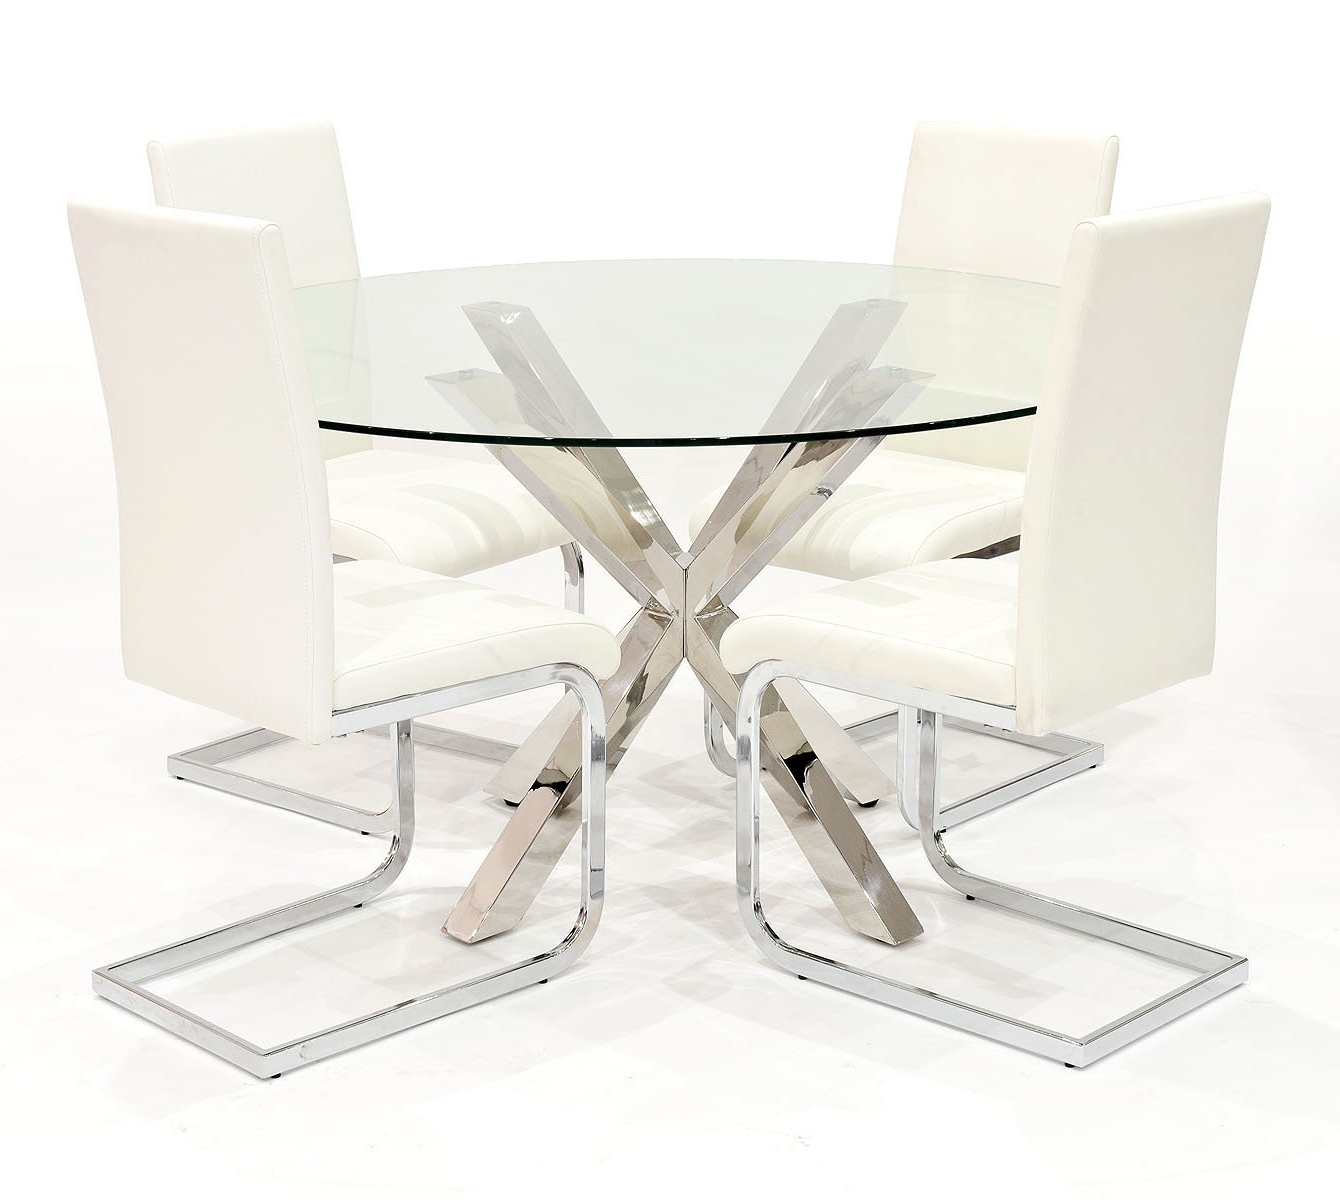 Eames Style Dining Tables With Chromed Leg And Tempered Glass Top In Most Current Febland Crossley Round Dining Table With Six Chairs: Amazon (View 6 of 30)